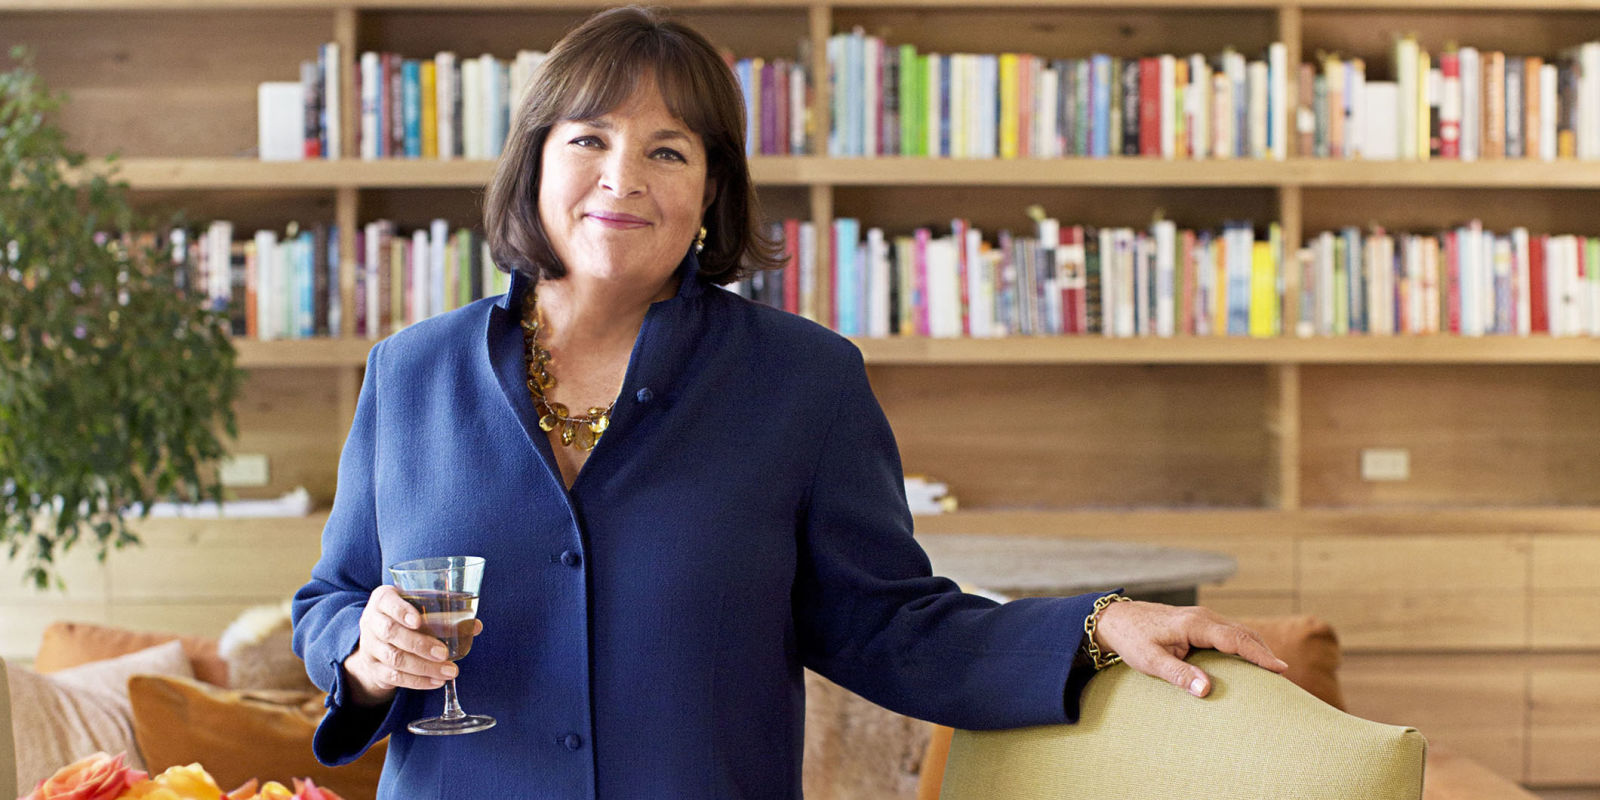 Ina Garten Age Amusing 13 Things You Never Knew About Ina Garten  Ina Garten Facts Design Inspiration